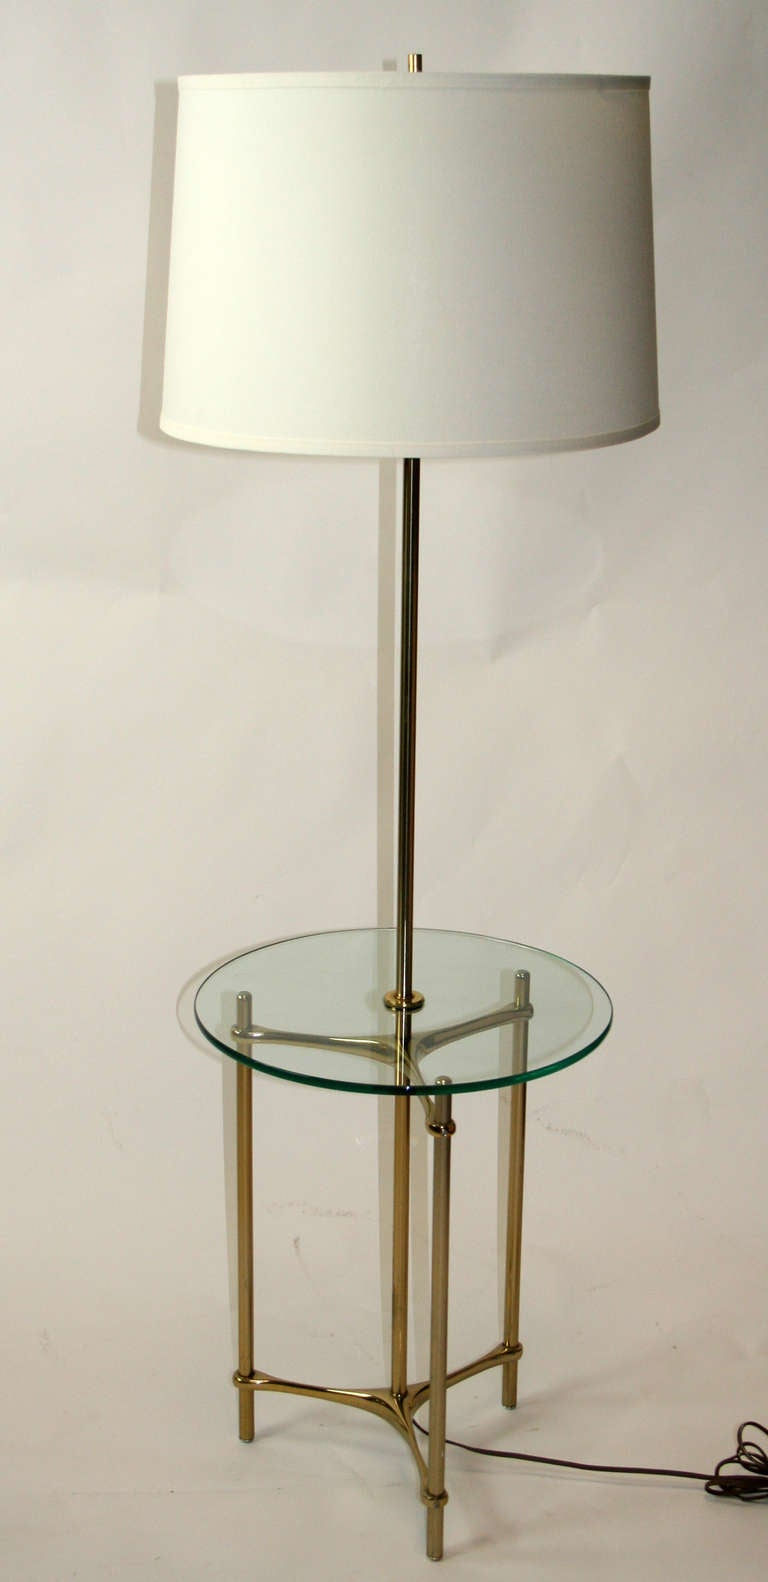 Laurel floor lamp table at 1stdibs for Floor lamp with table